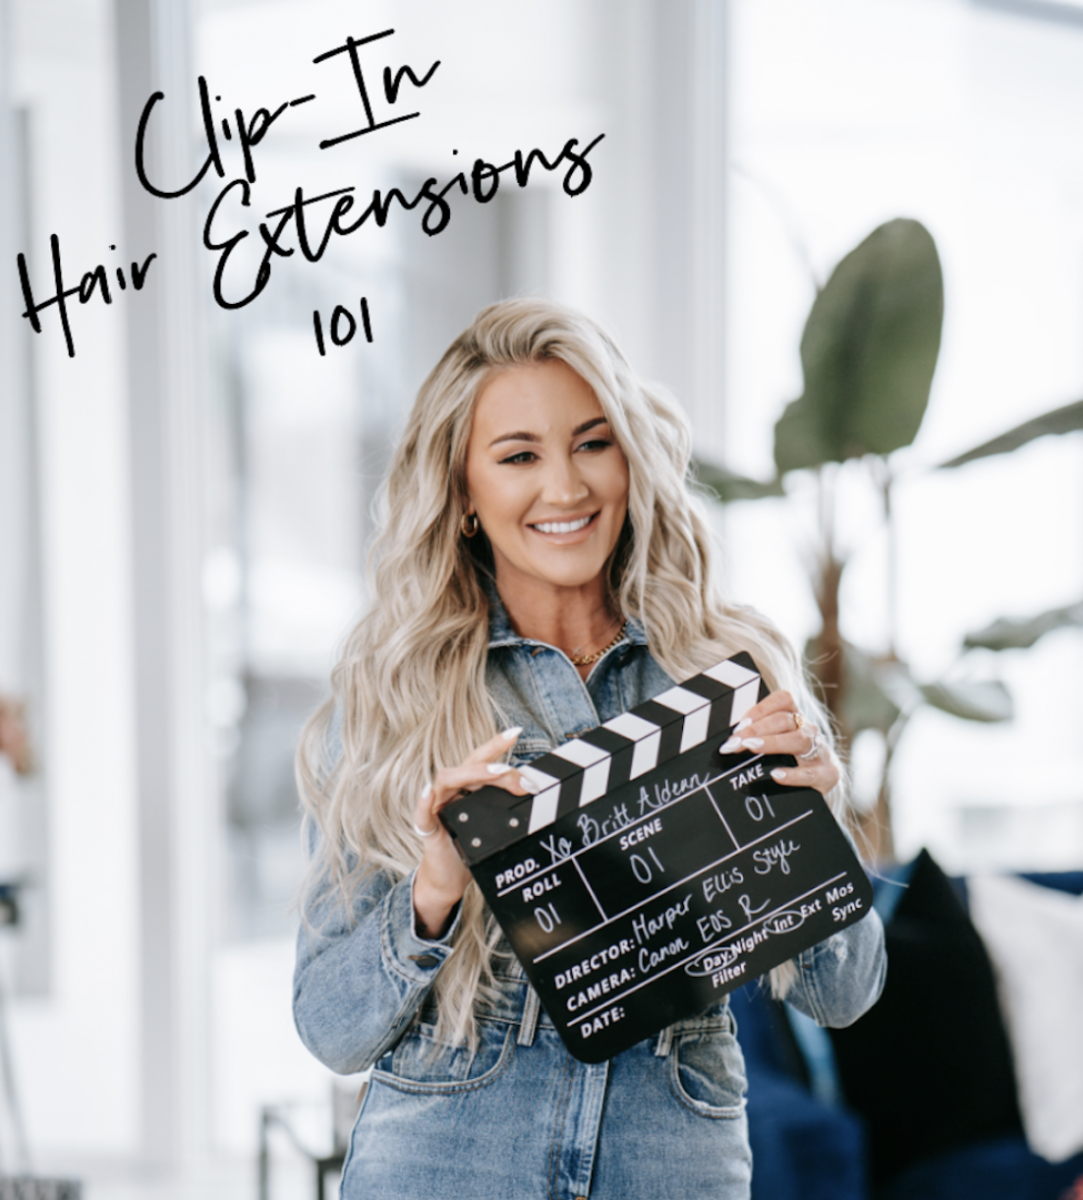 Clip-in Hair Extensions 101: Breaking Down the Basics